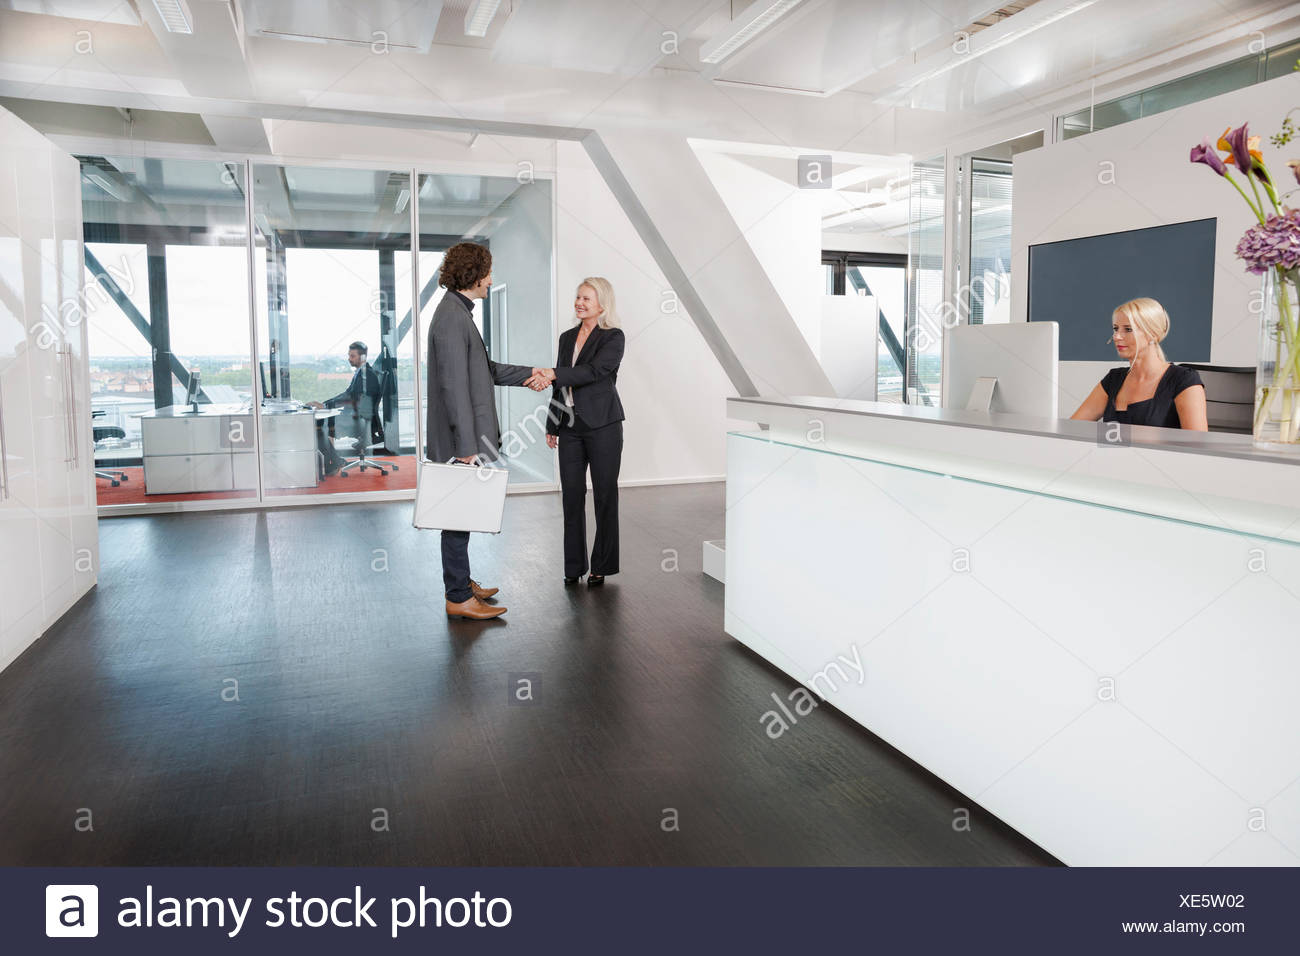 Woman shaking hands with visitor at reception - Stock Image